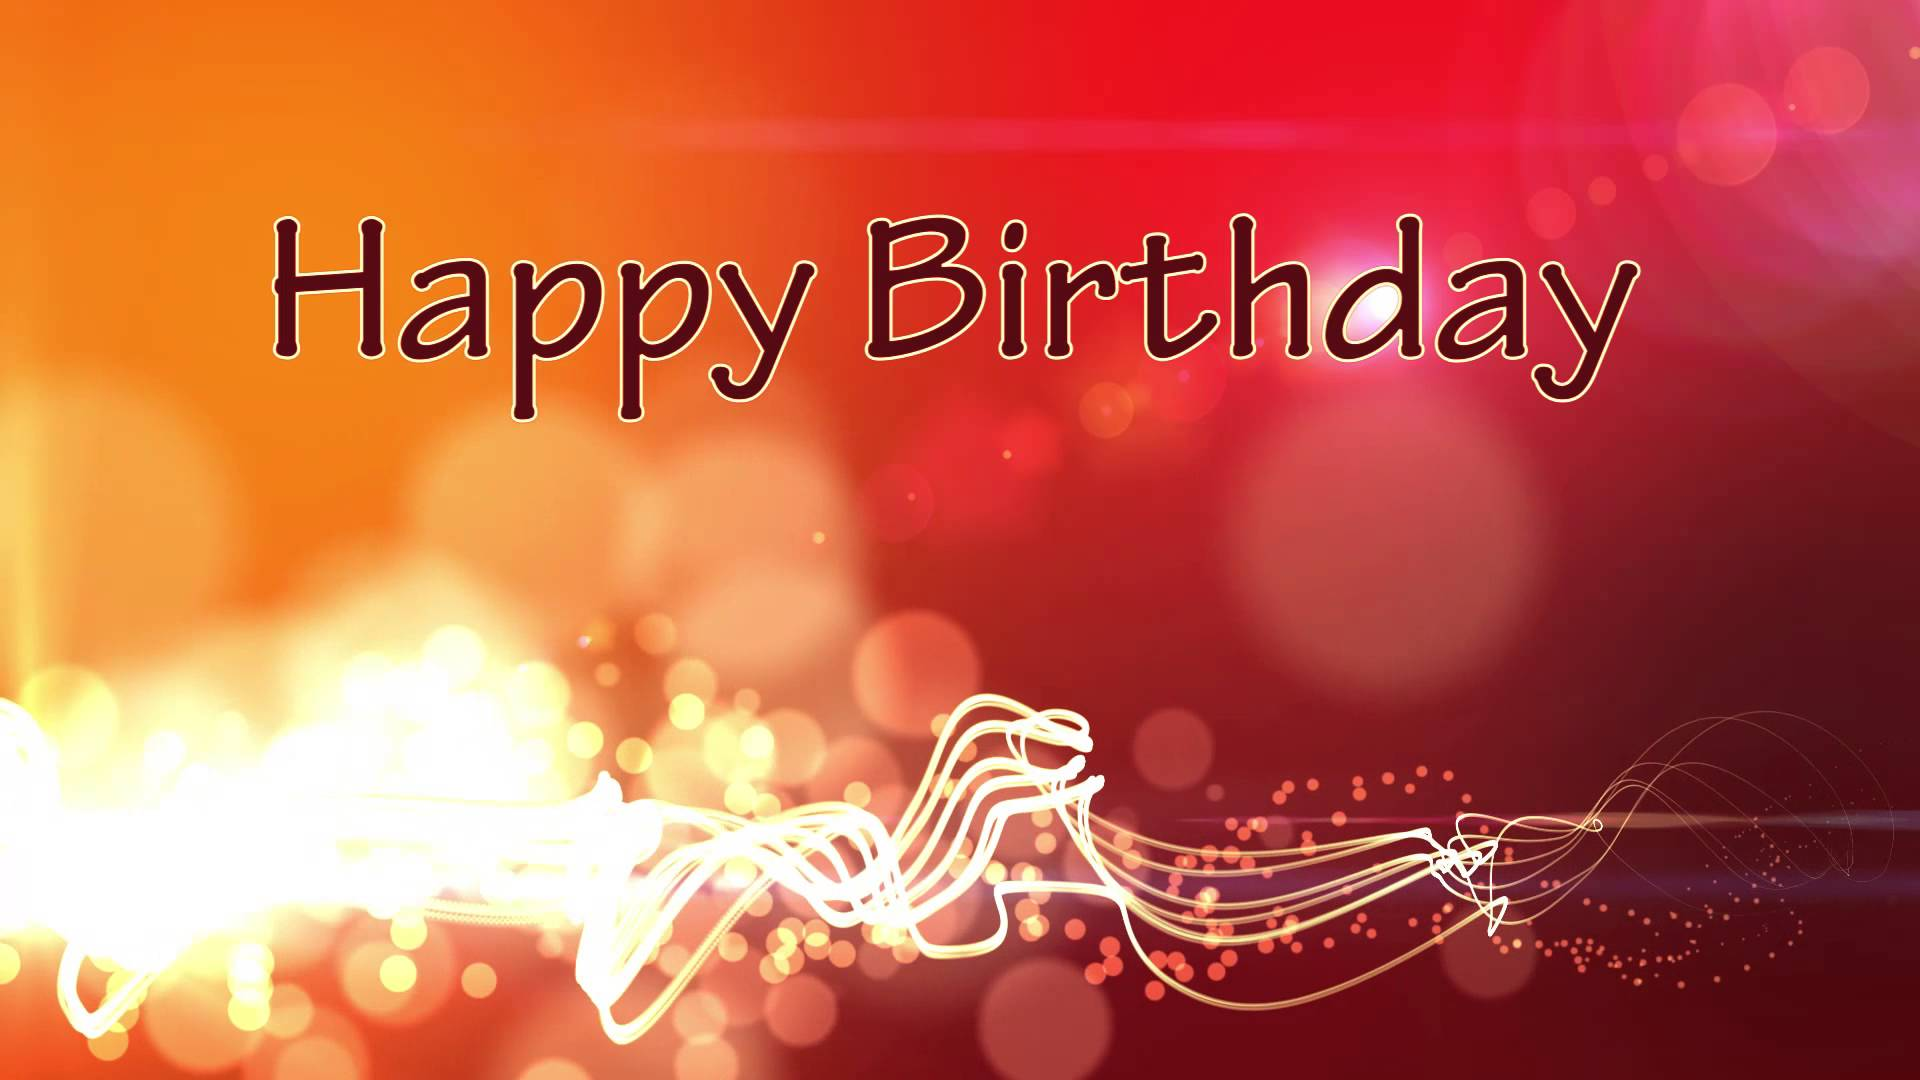 happy birthday hd images download ; Happy-birthday-wallpaper-HD-free-download